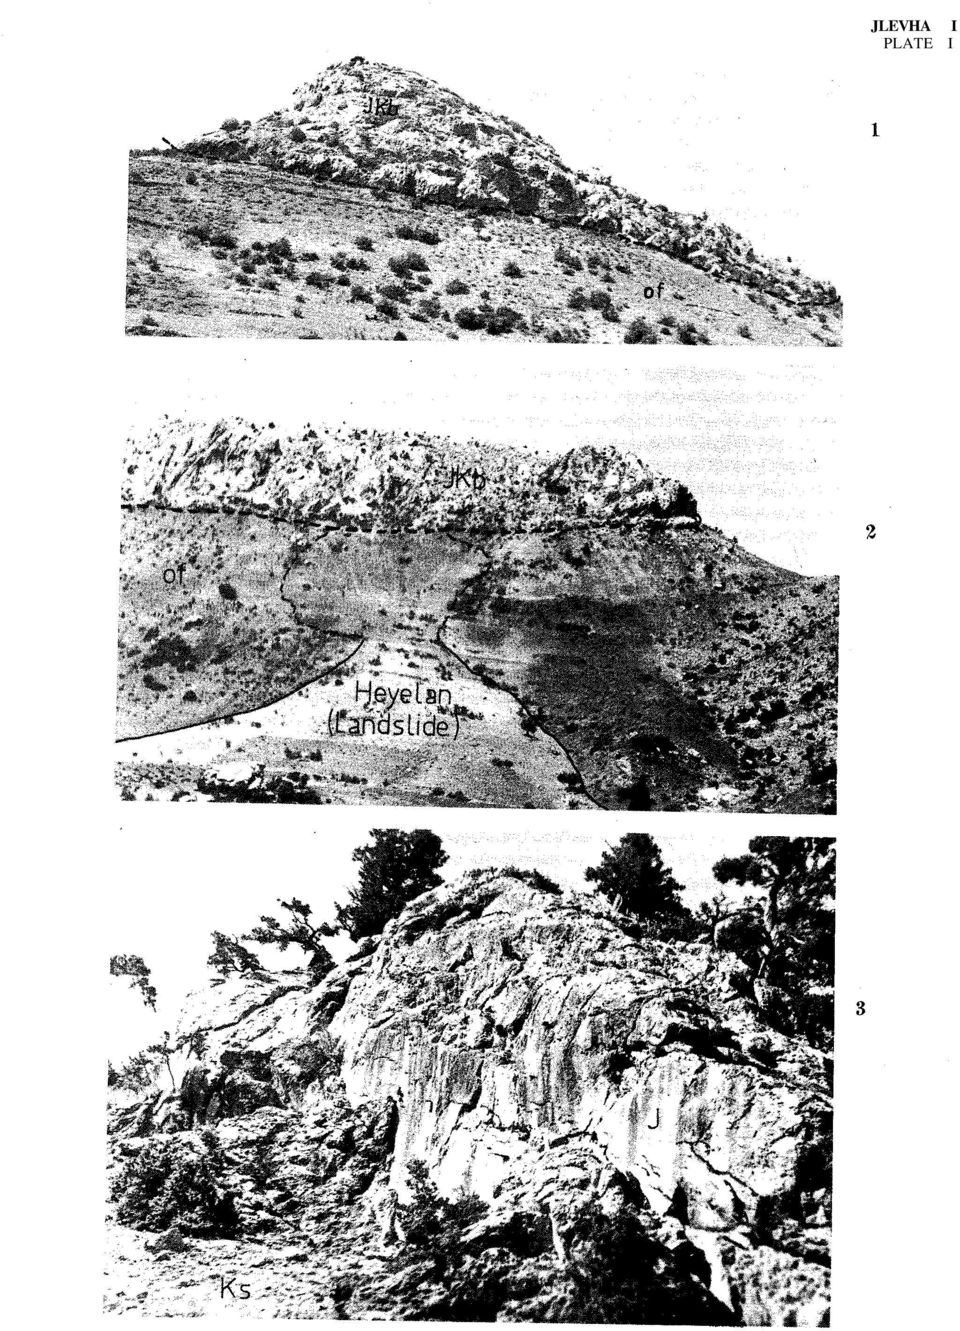 PLATE II Figure 1: View of sliding traces on an olistolith (JKb) in the Pınarcık Çeşmesi Olisthostrome (Kp) (Çukıırbag